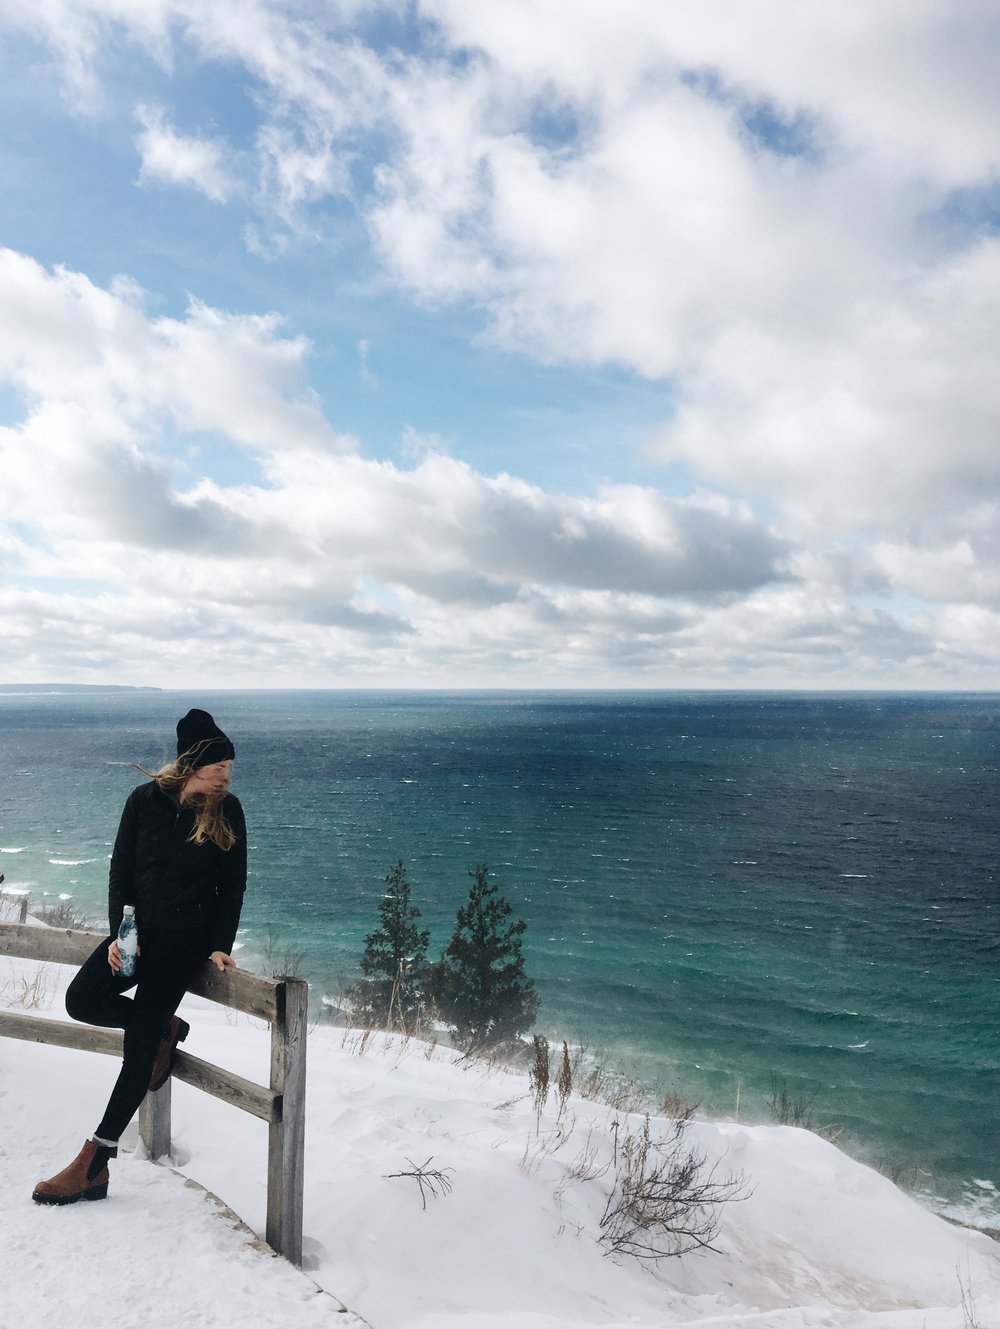 Woman leaning on fence overlooking lake michigan in winter